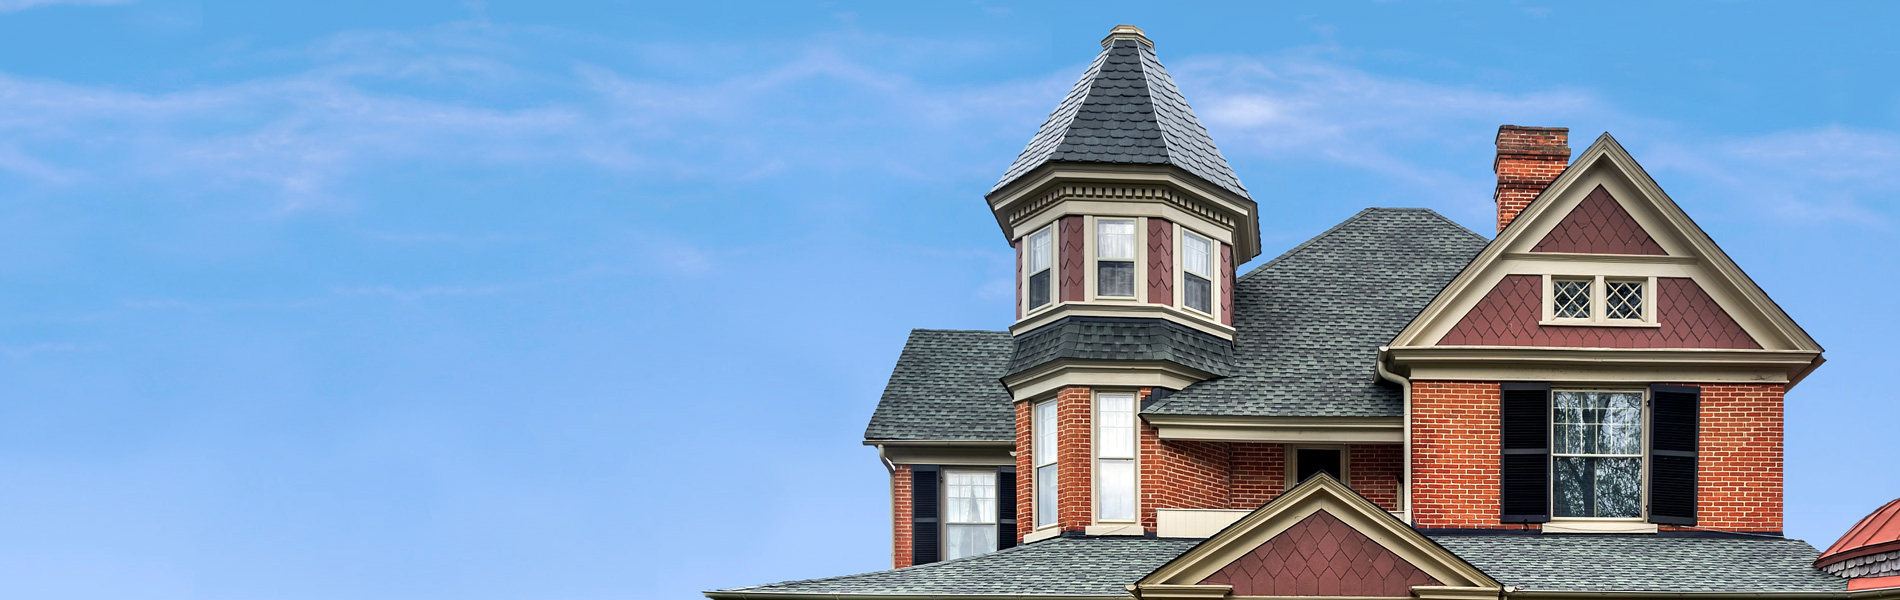 Grand Blanc Historic Home Painting